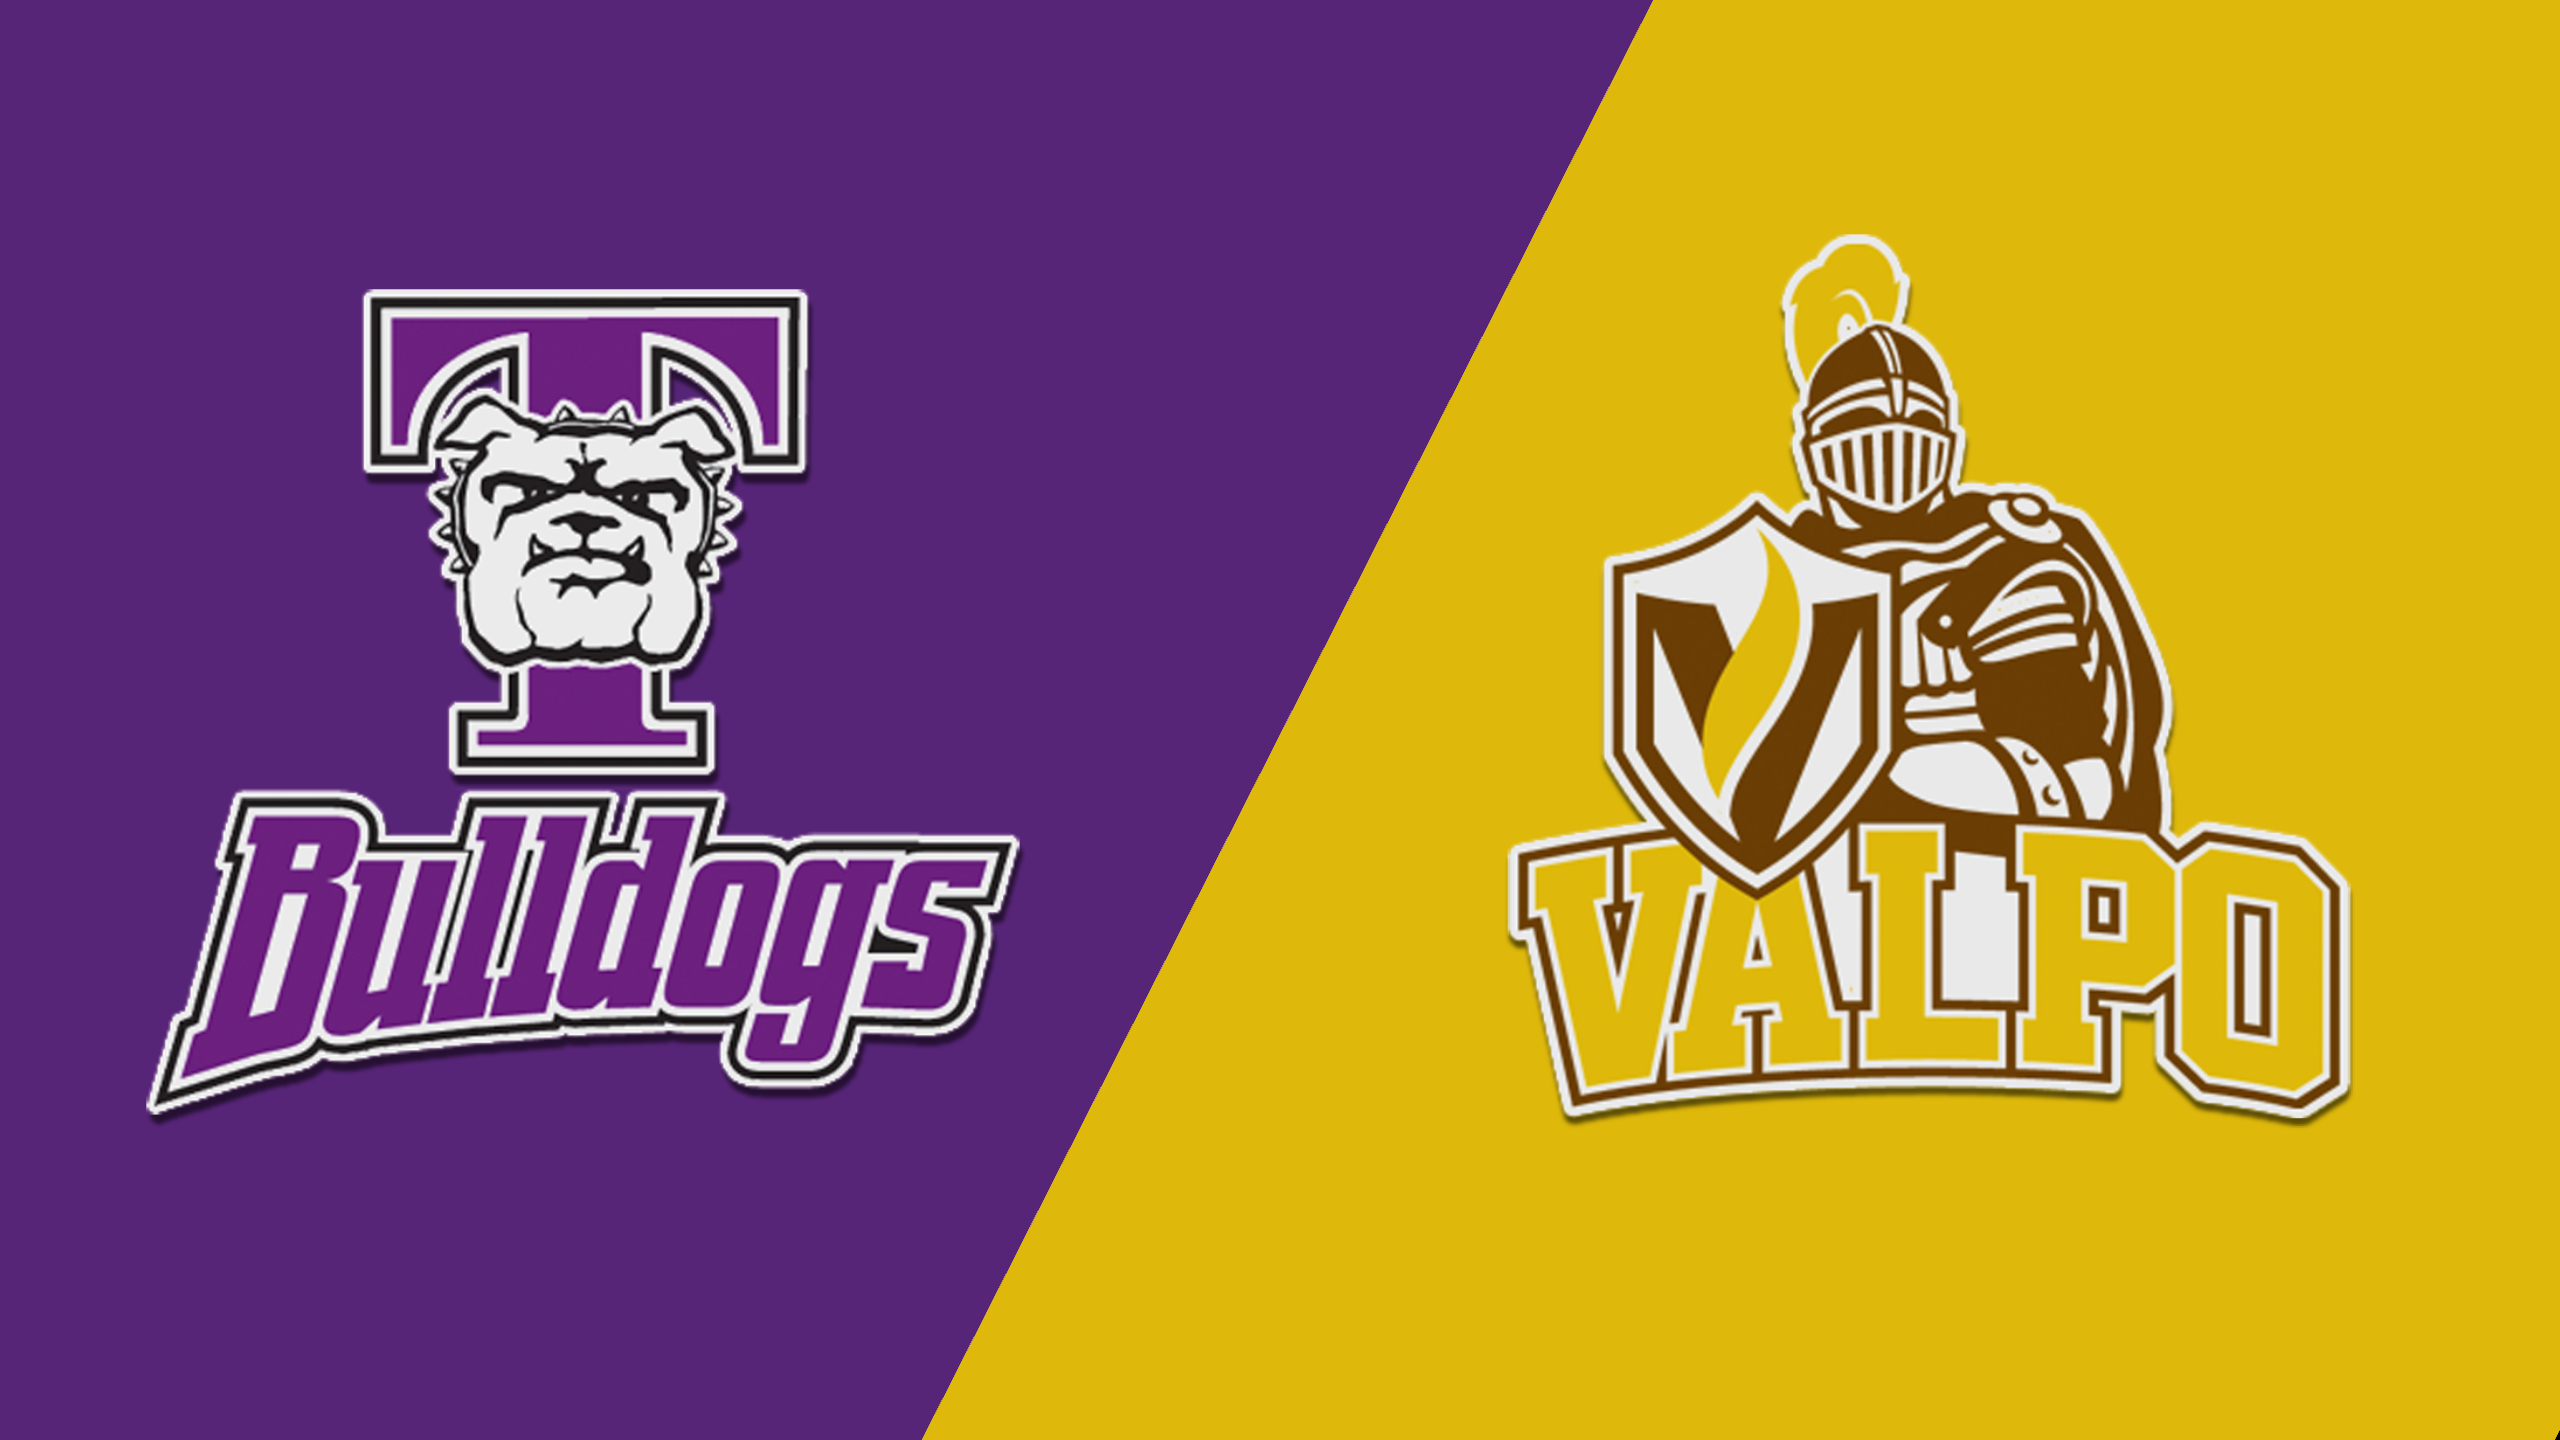 Truman State vs. Valparaiso (Football)